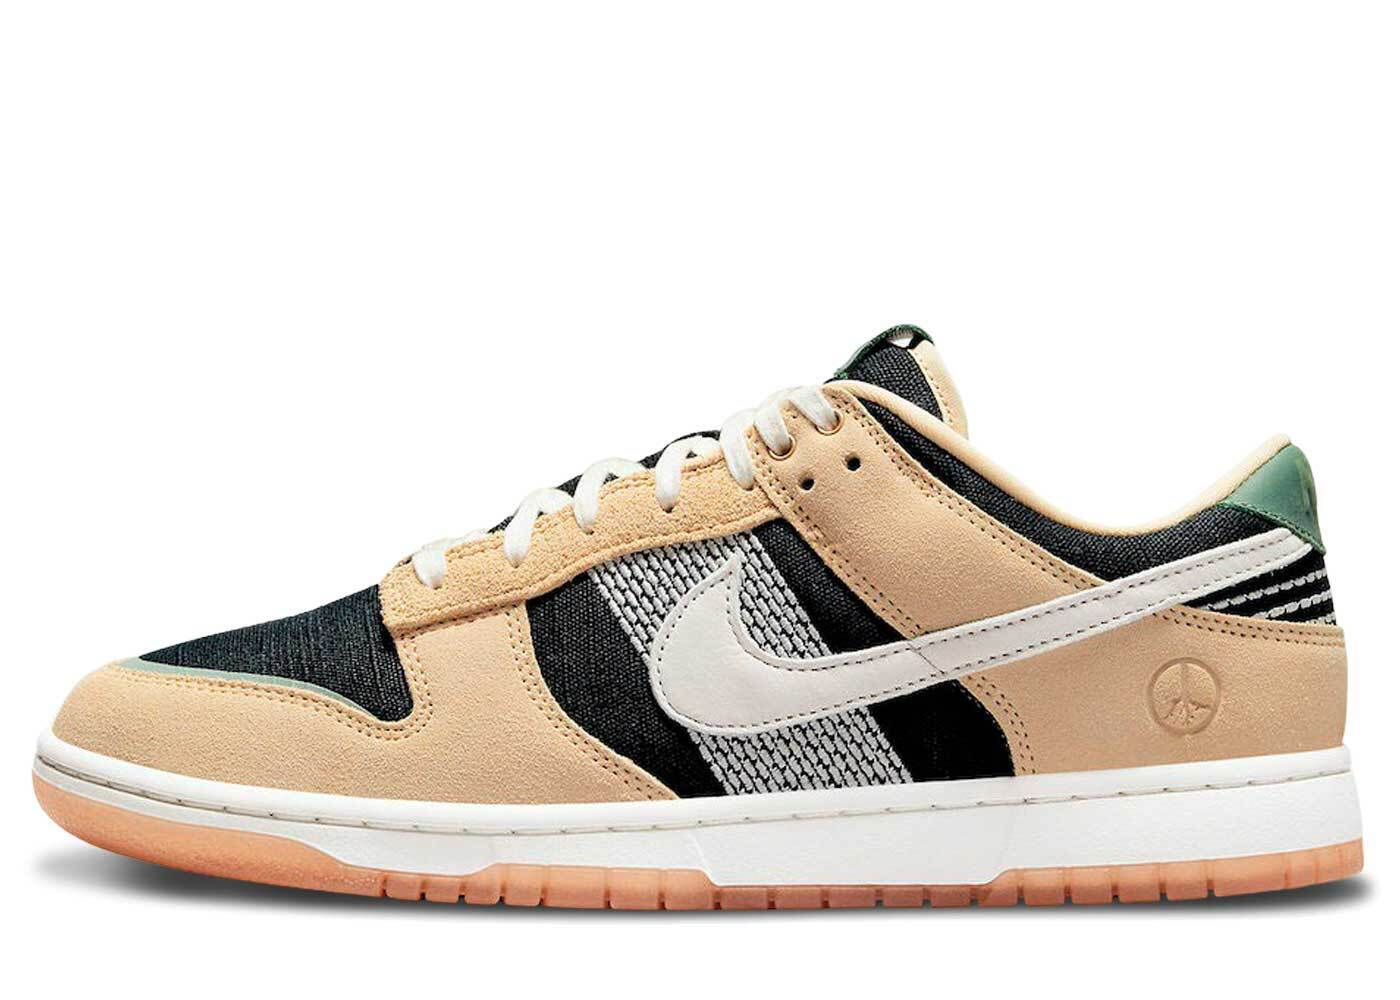 Nike Dunk Low Rooted in Peaceの写真